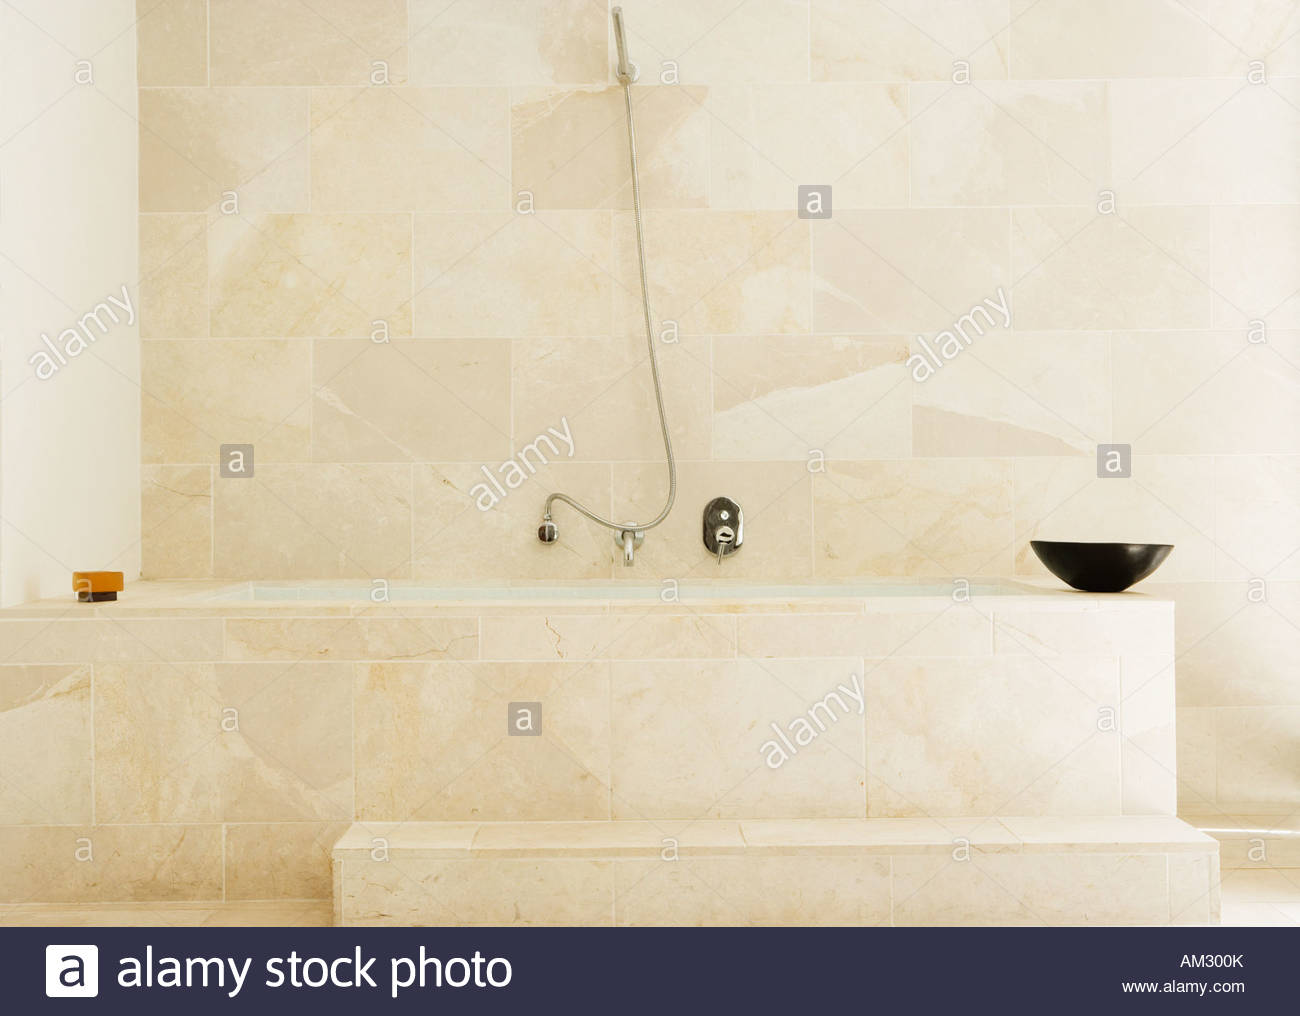 bath tubs showers stockfotos bath tubs showers bilder. Black Bedroom Furniture Sets. Home Design Ideas